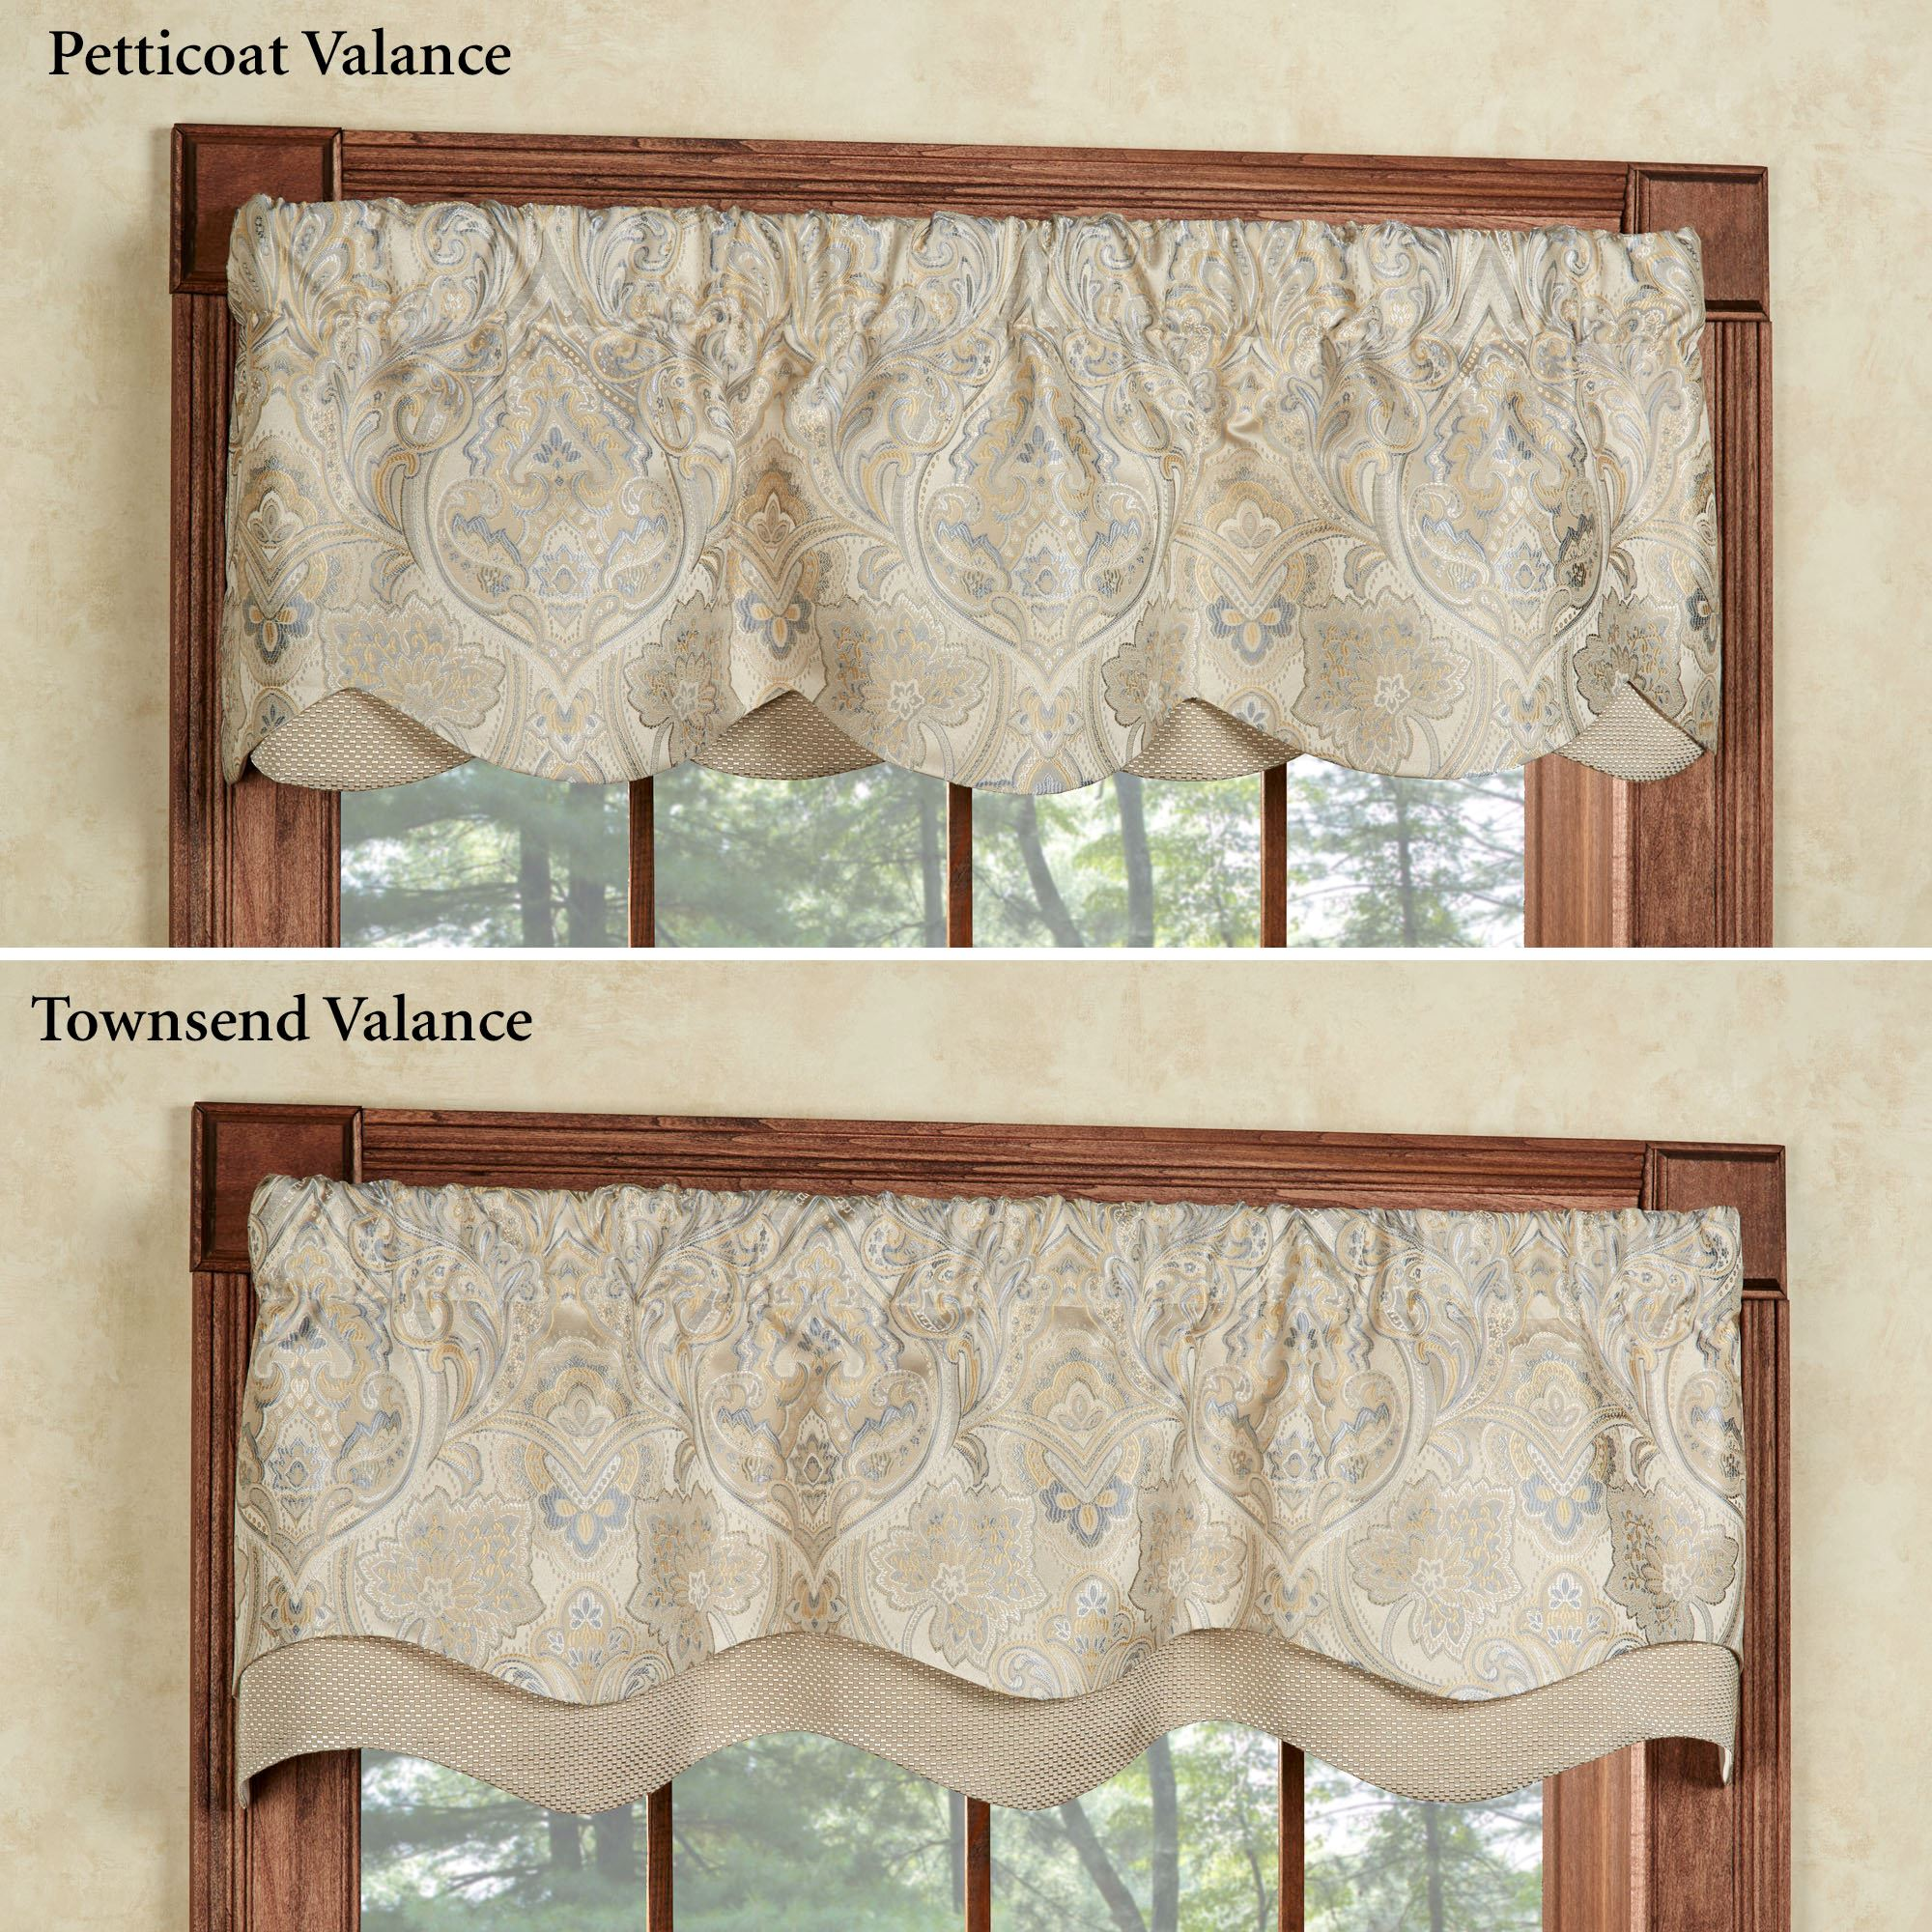 cording ruffled bryce for nautical and valance starfish window valances windows chenille curtain top stylemaster dp treatment twill birch with by inch scalloped gray